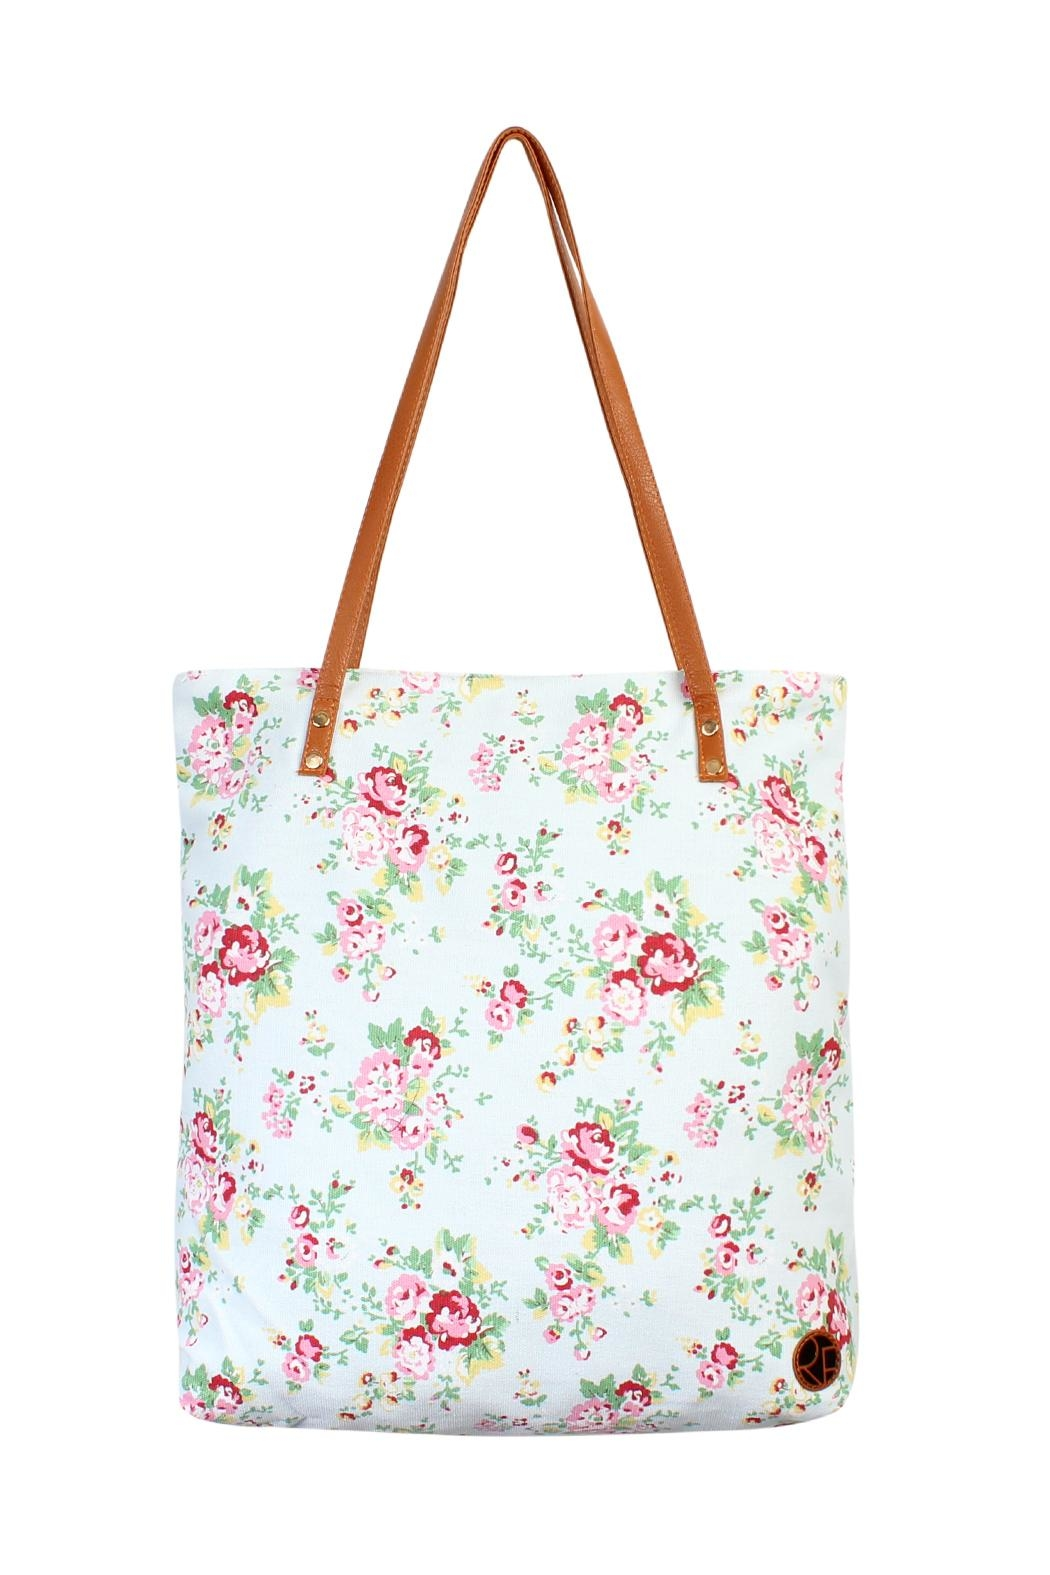 riah fashion floral print tote bag from california shoptiques